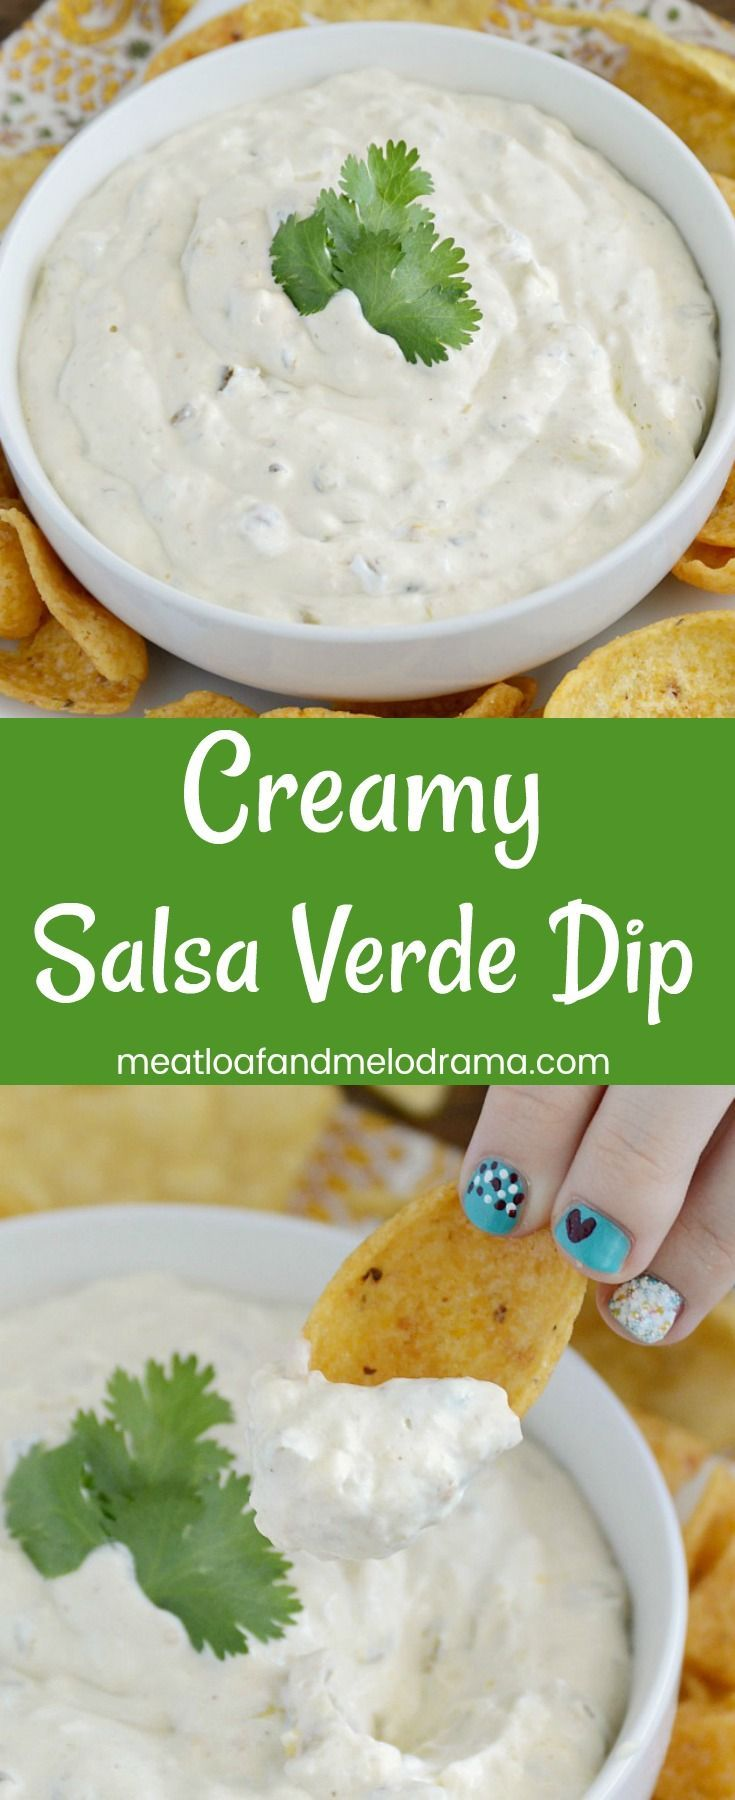 Creamy Salsa Verde Dip is an easy chip dip made in less than 5 minutes with only 3 ingredients. It's perfect for parties, potlucks, game day or every day snacking!